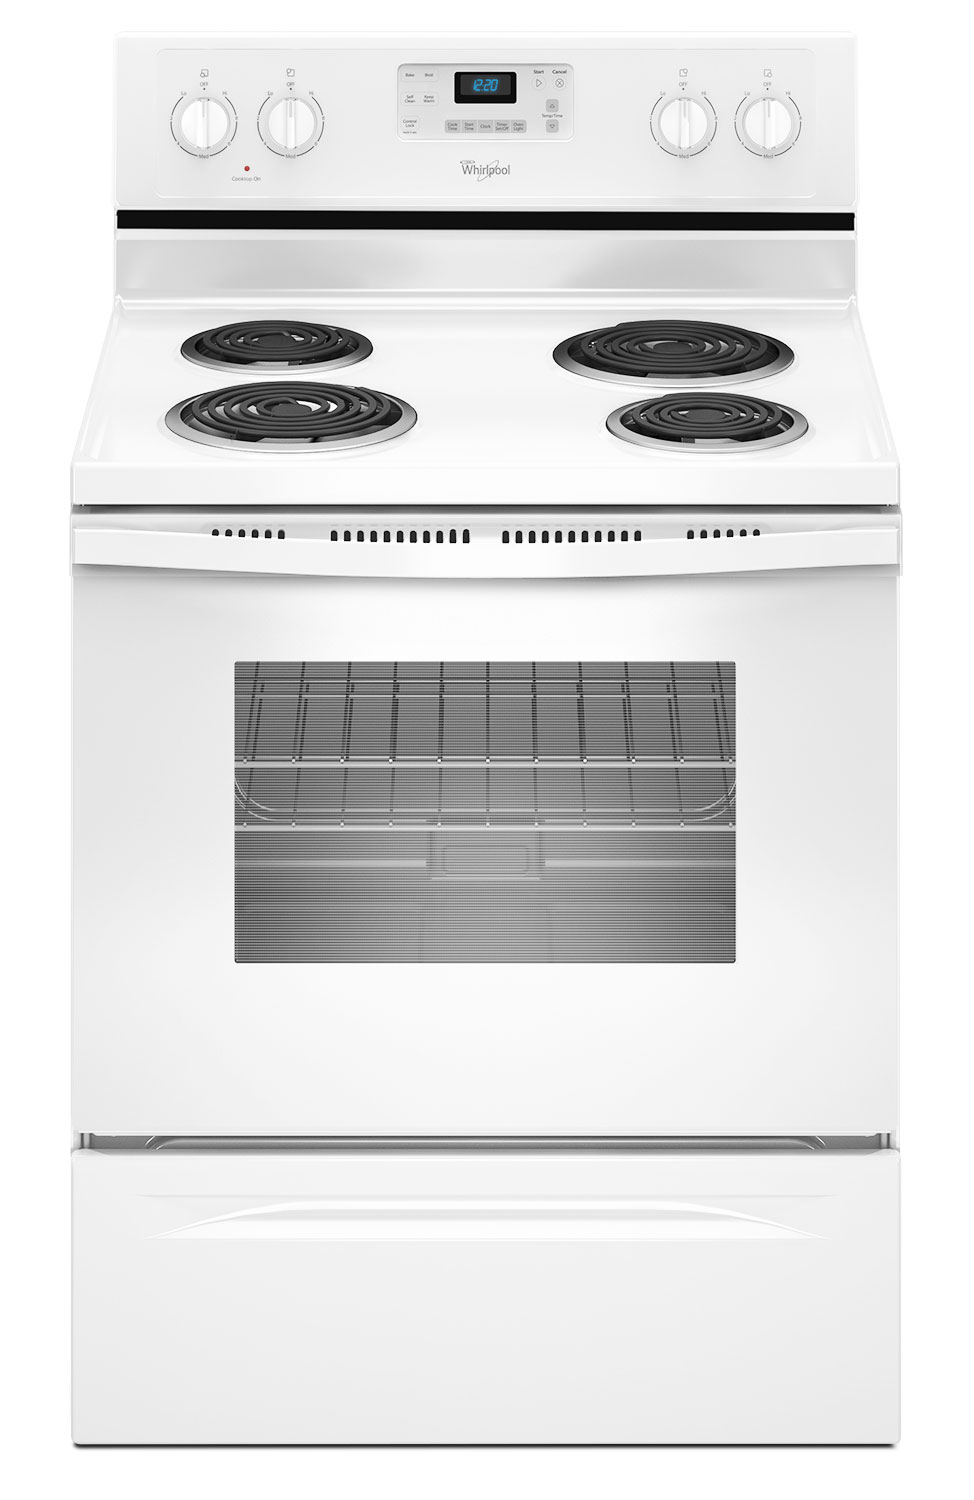 Whirlpool White Freestanding Electric Range (4.8 Cu. Ft.) - YWFC310S0EW